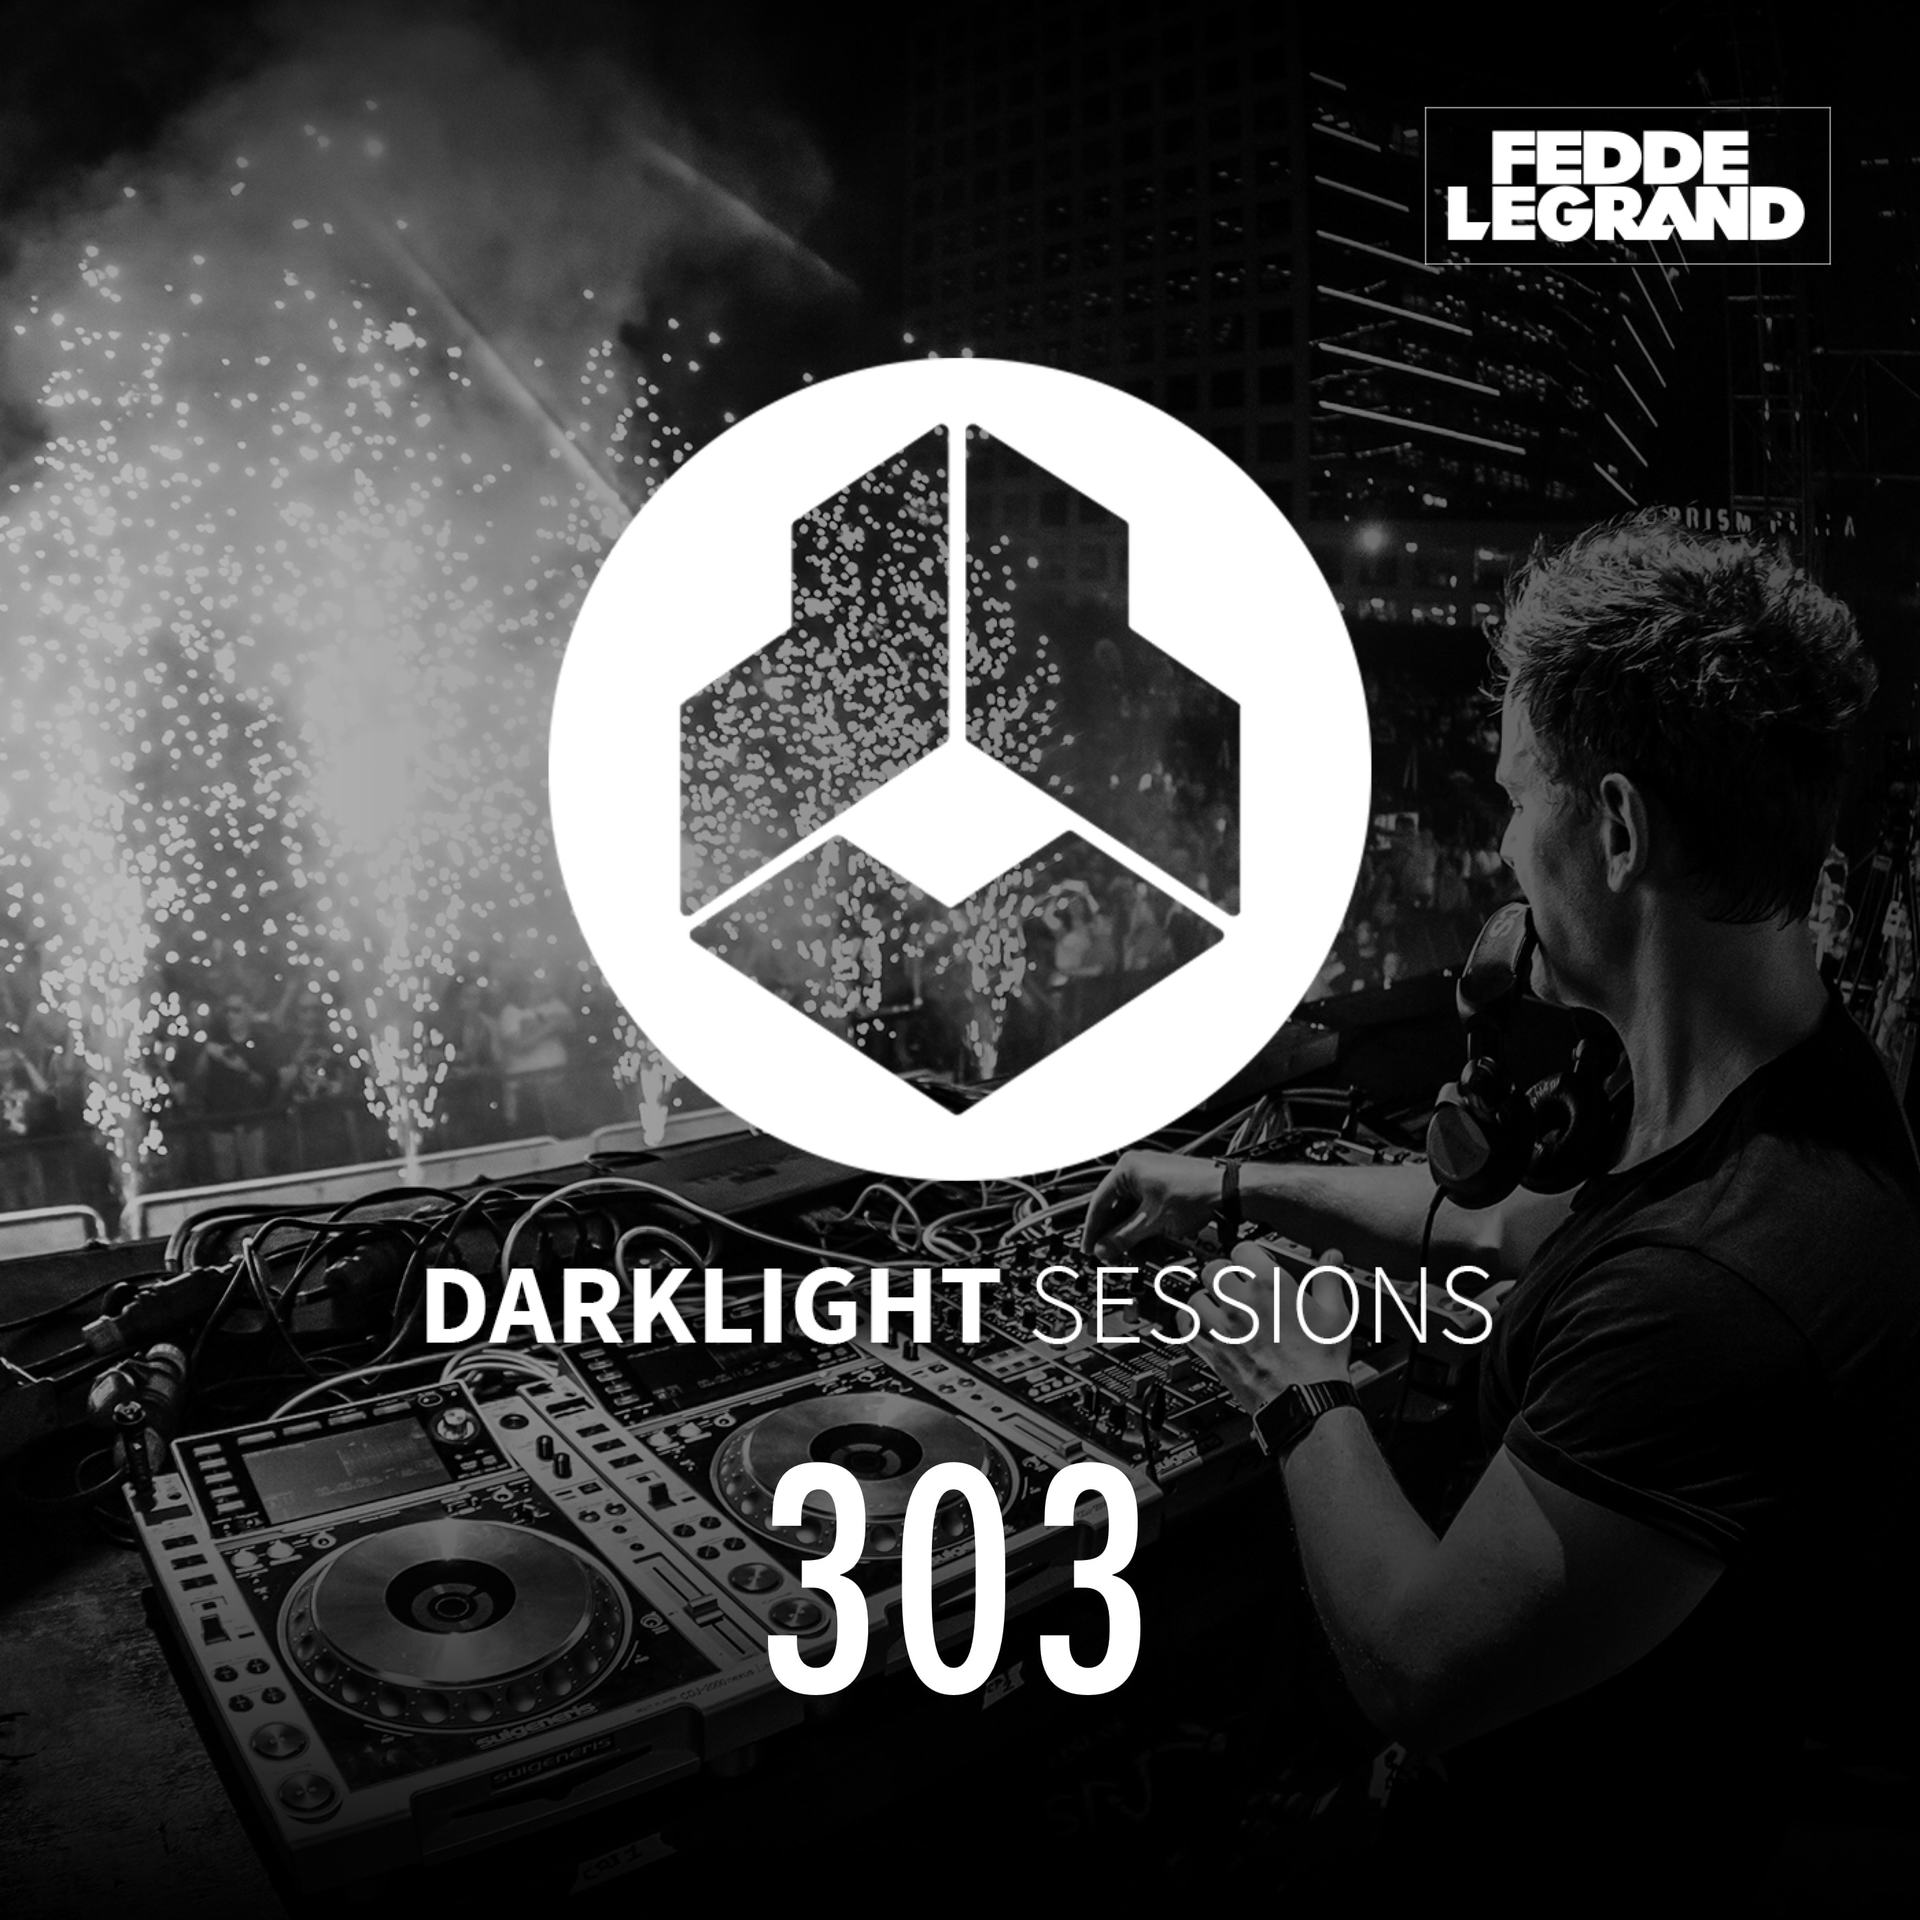 Darklight Sessions 303